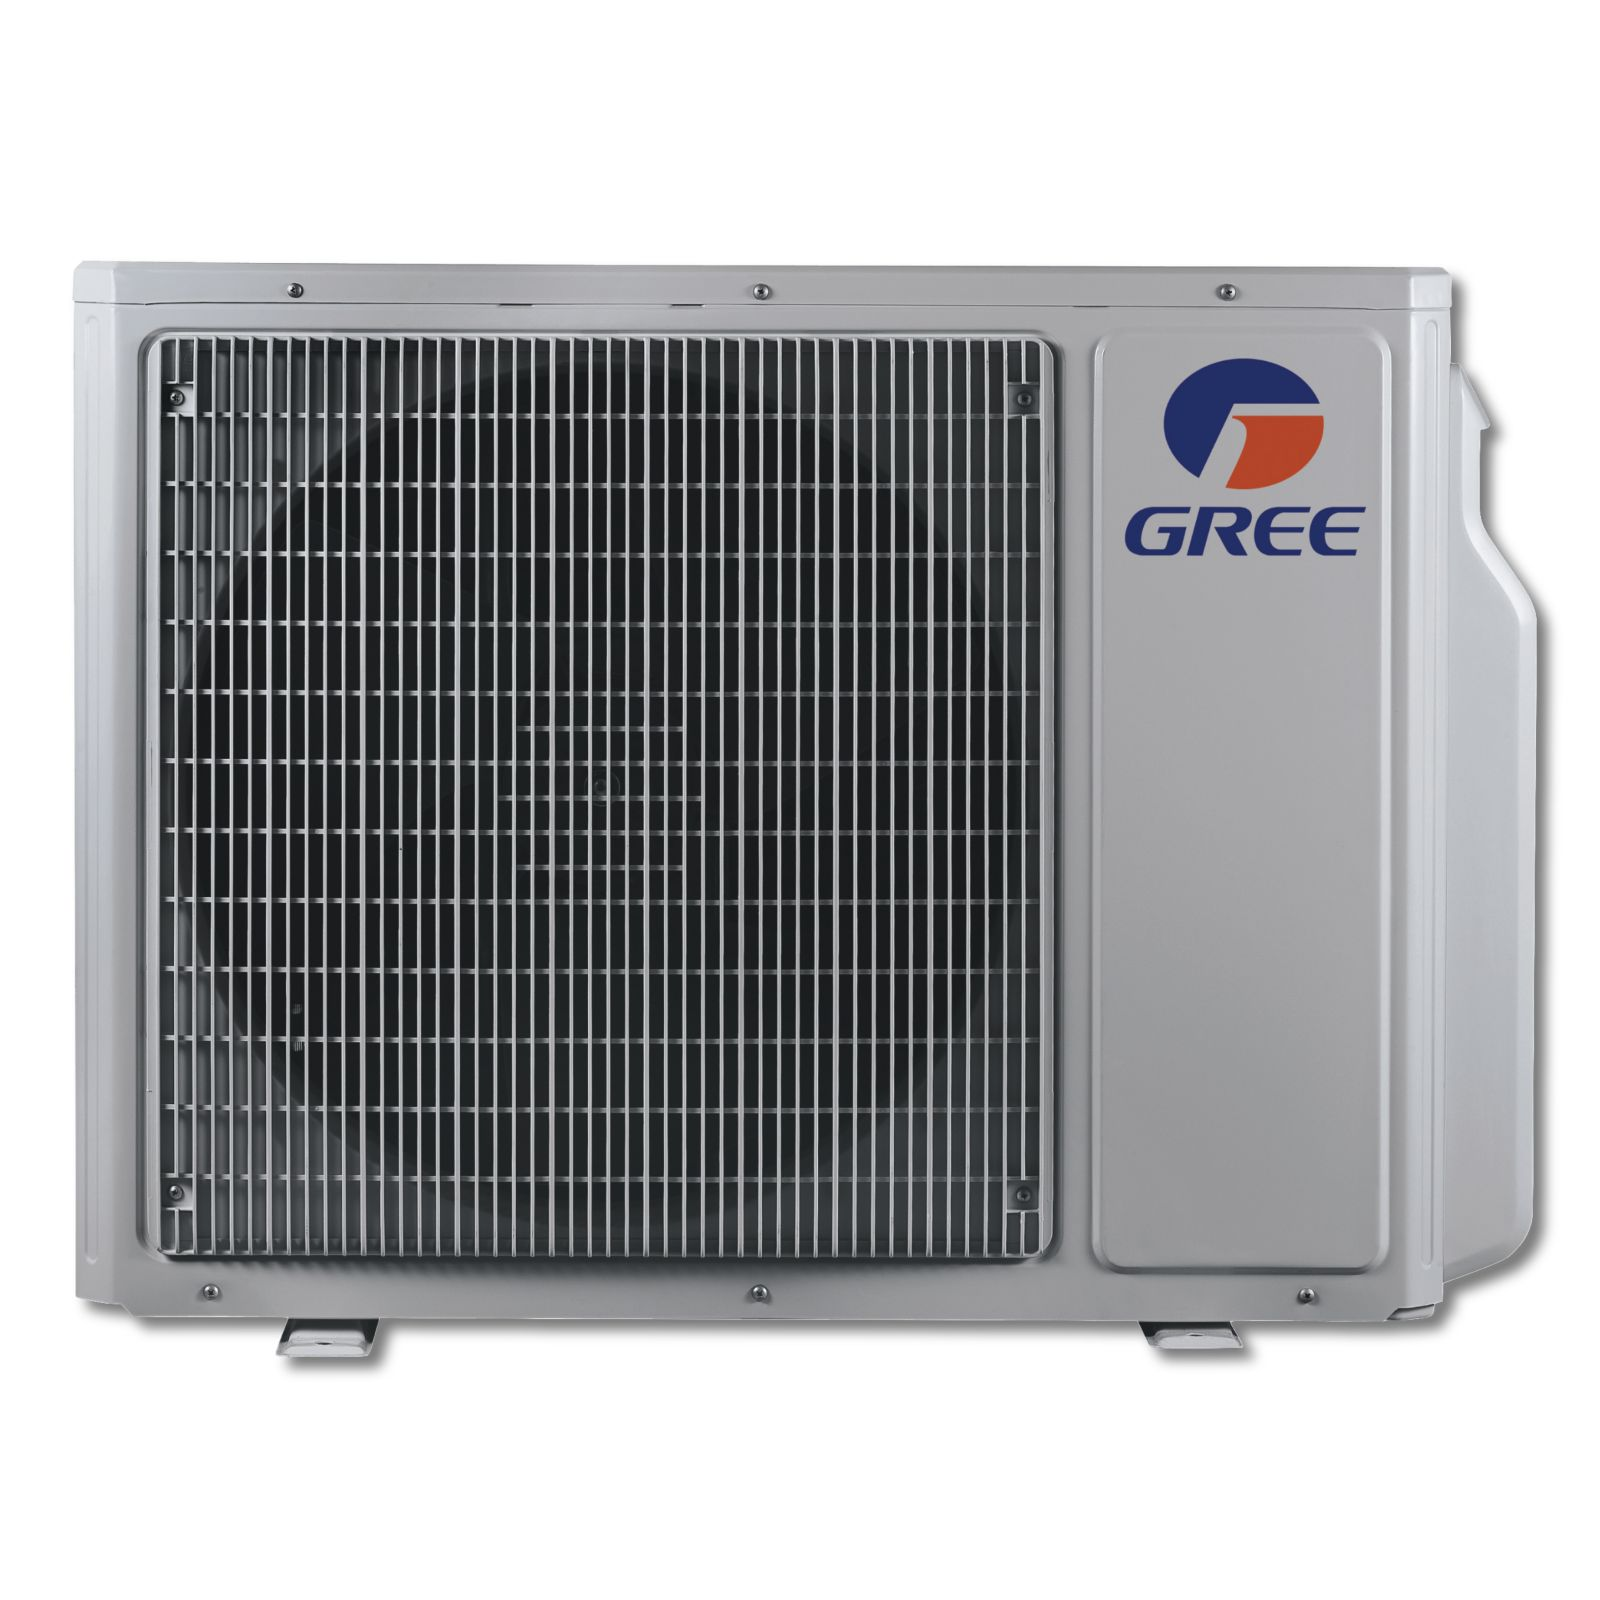 GREE MULTI24HP230V1BO -  2 Ton 16 SEER EVO+ Multi Ductless Mini-Split Heat Pump 208-230/1/60, High Efficiency